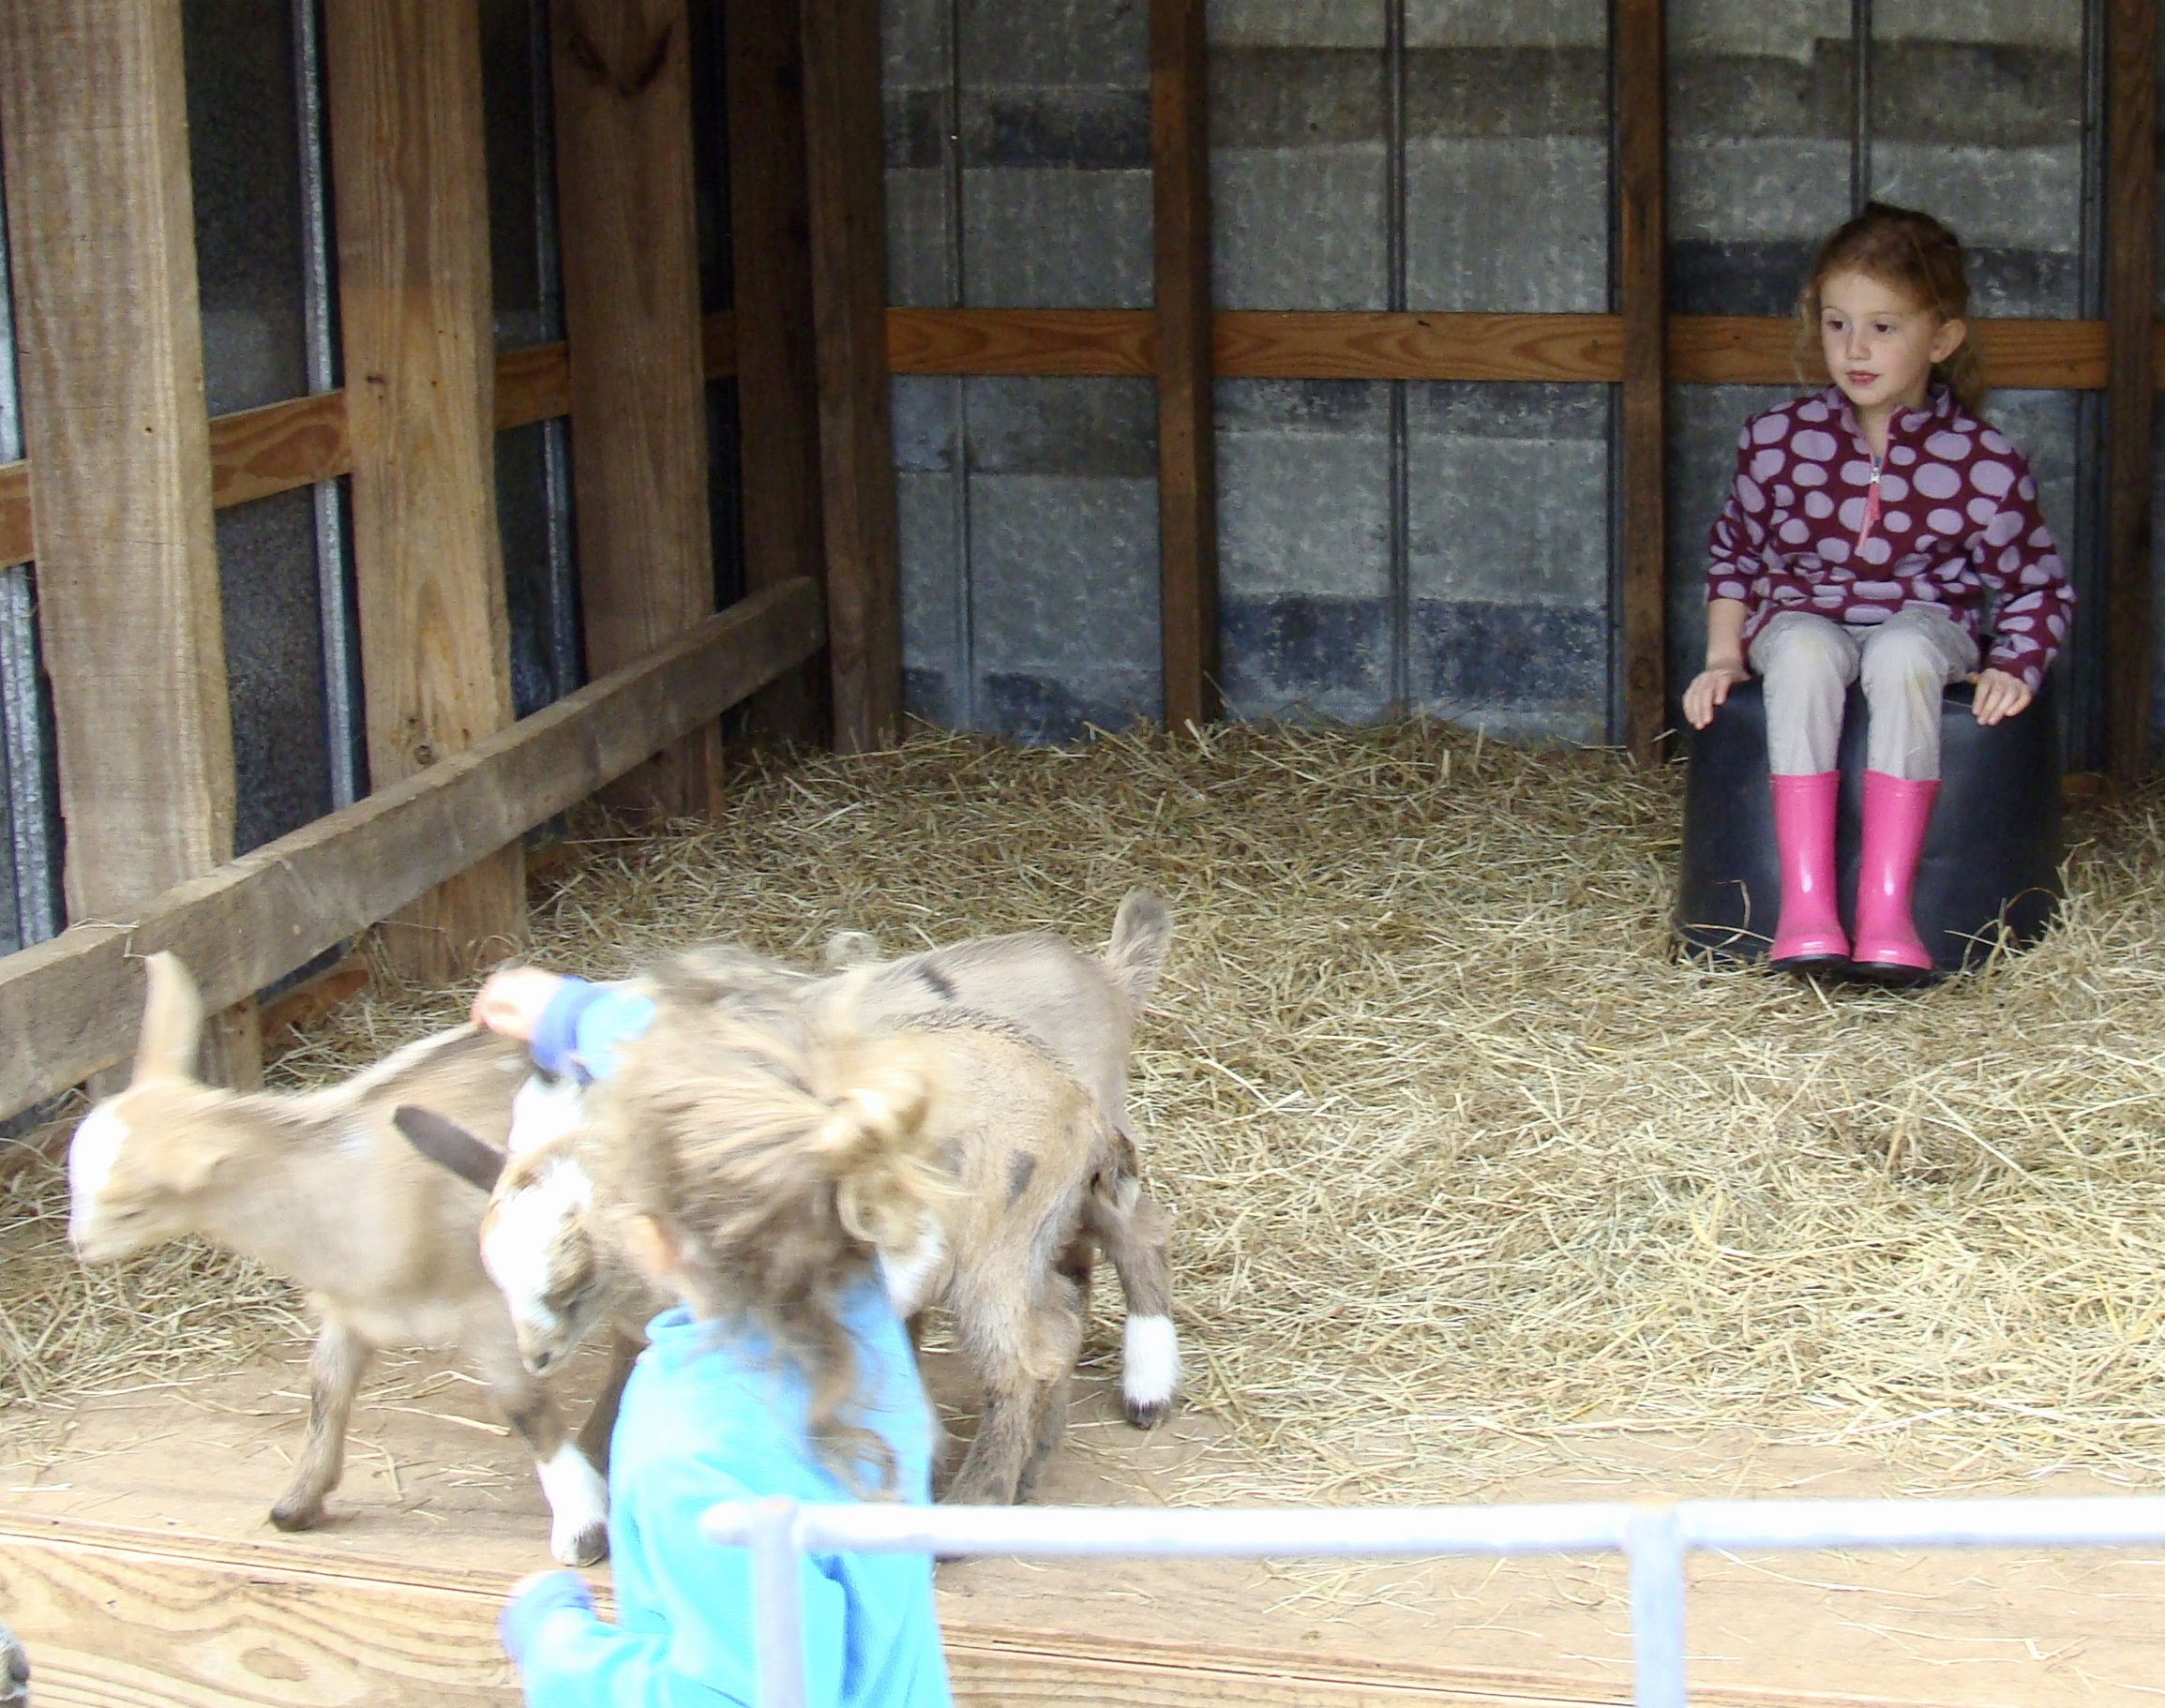 granddaughters and baby goats